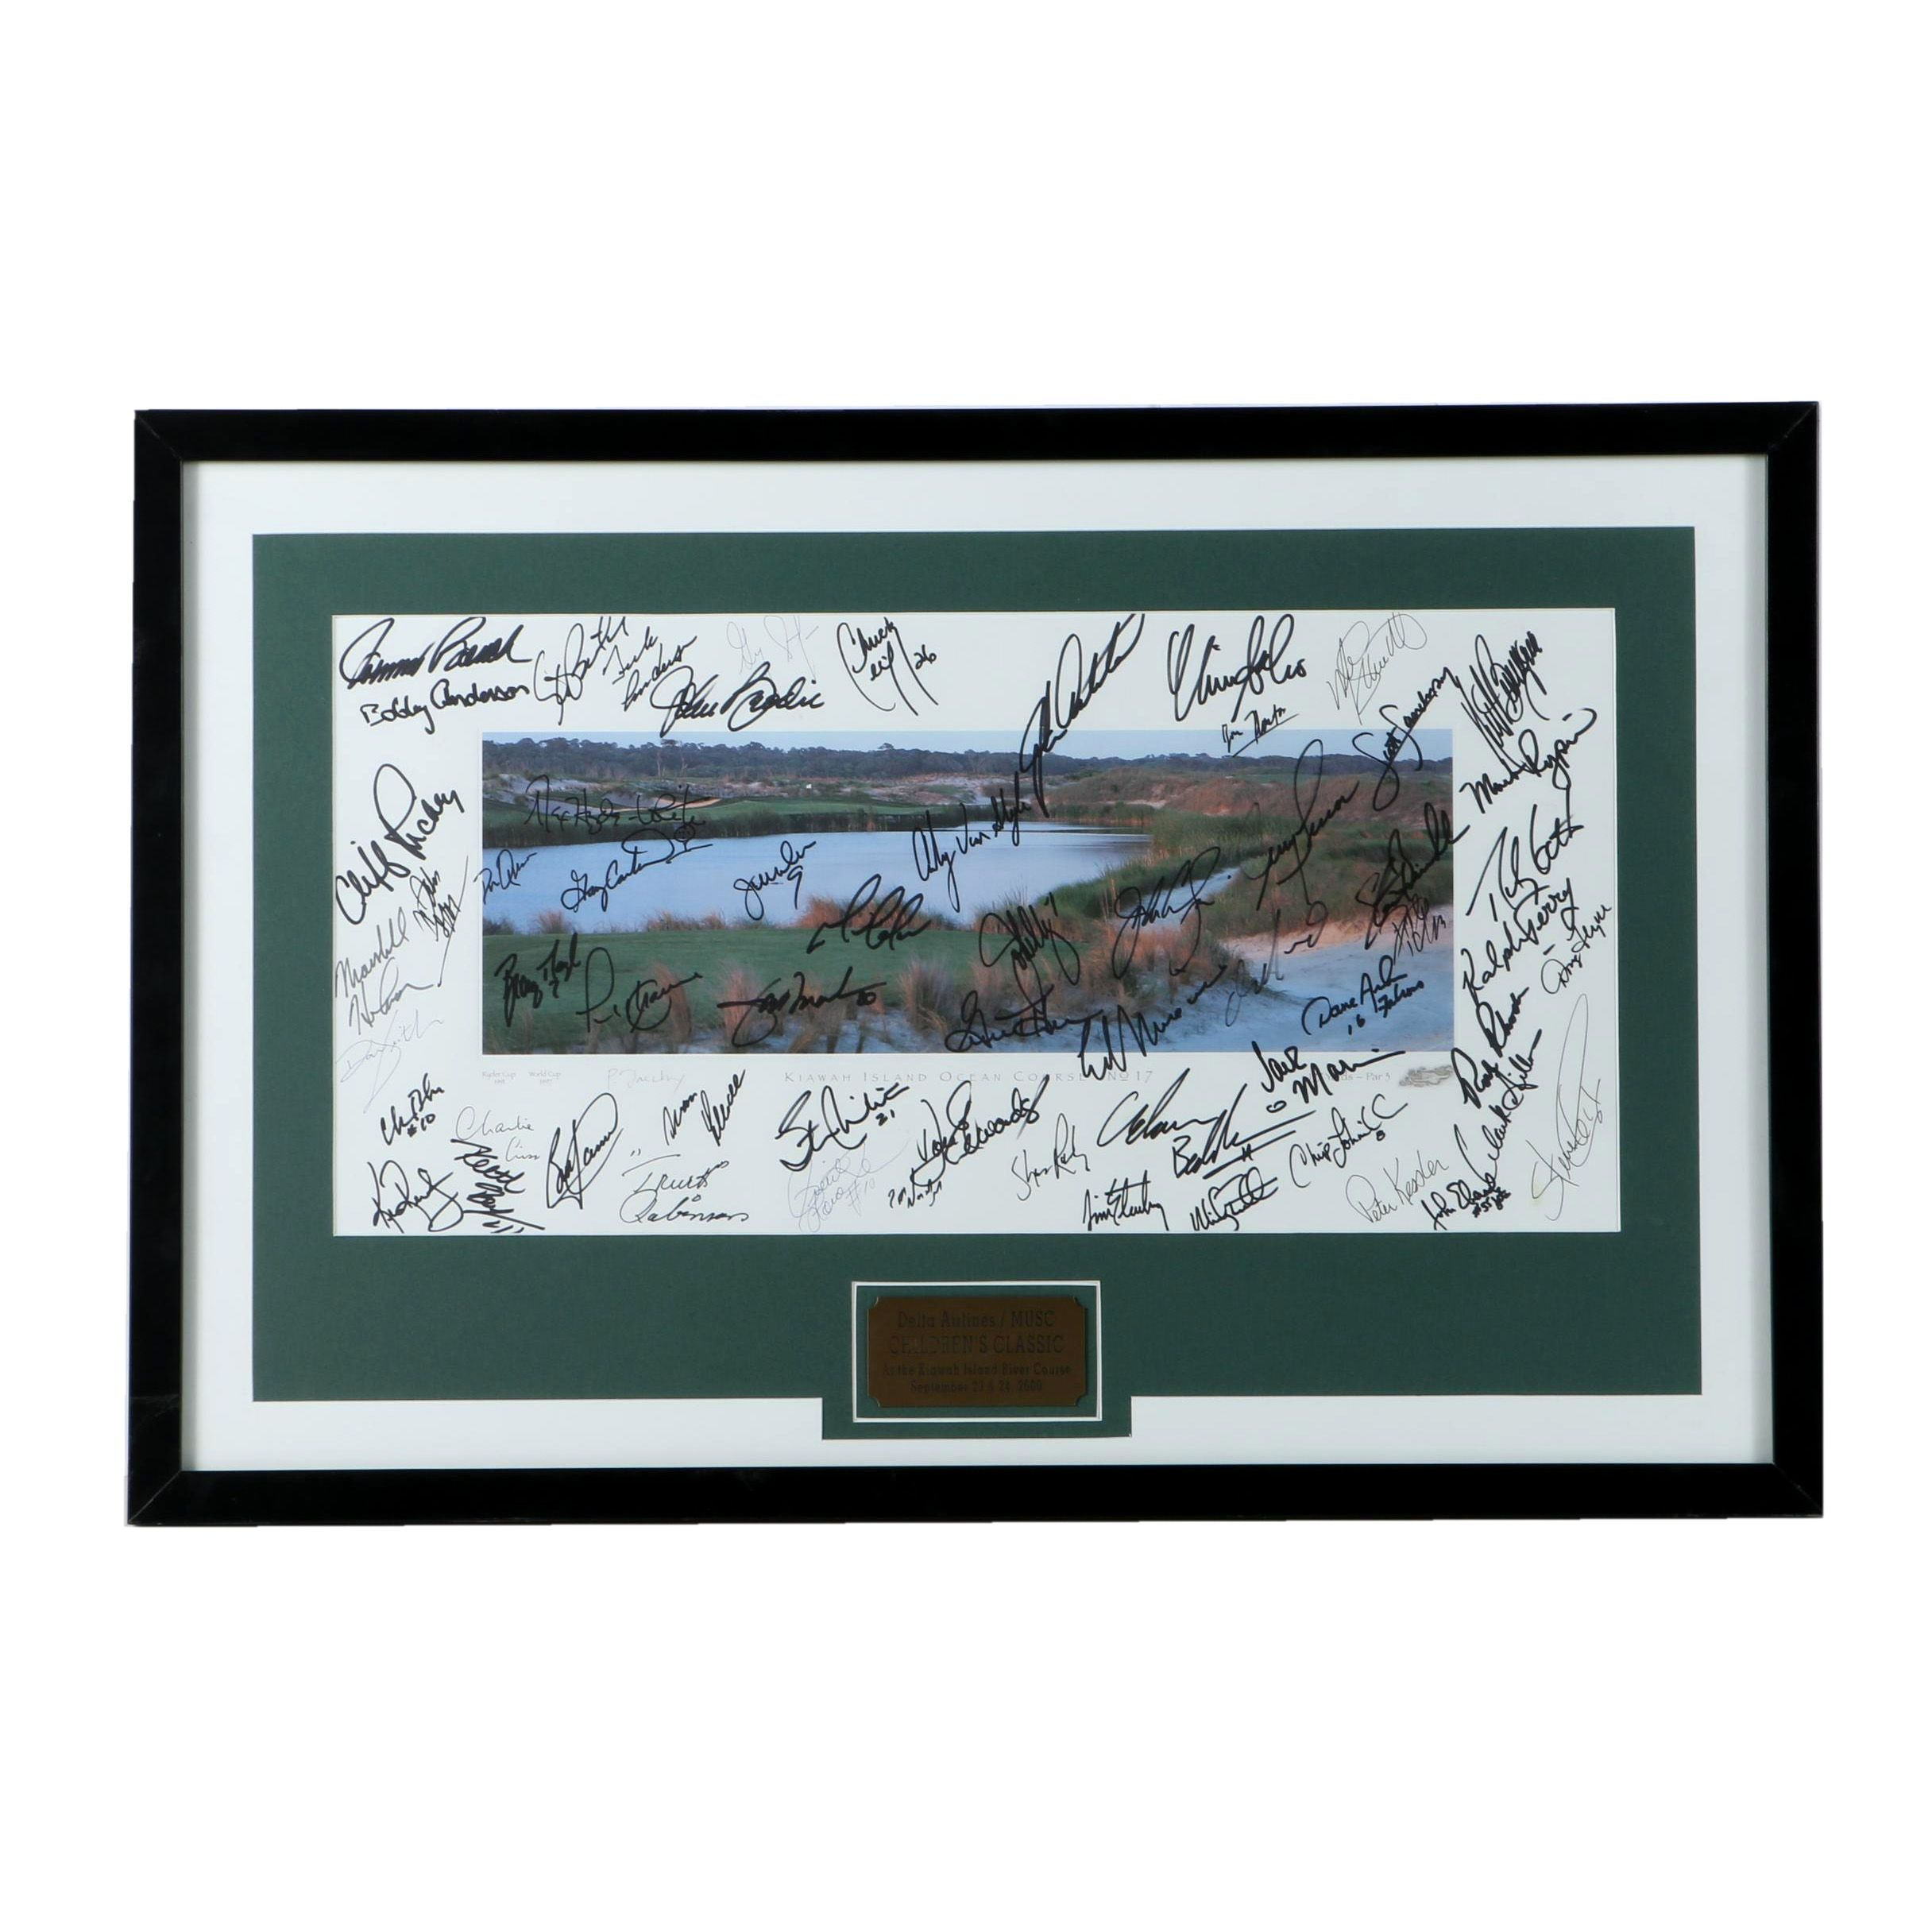 2000 Multiple Pro Athlete Autographed Charity Golf Tournament Print